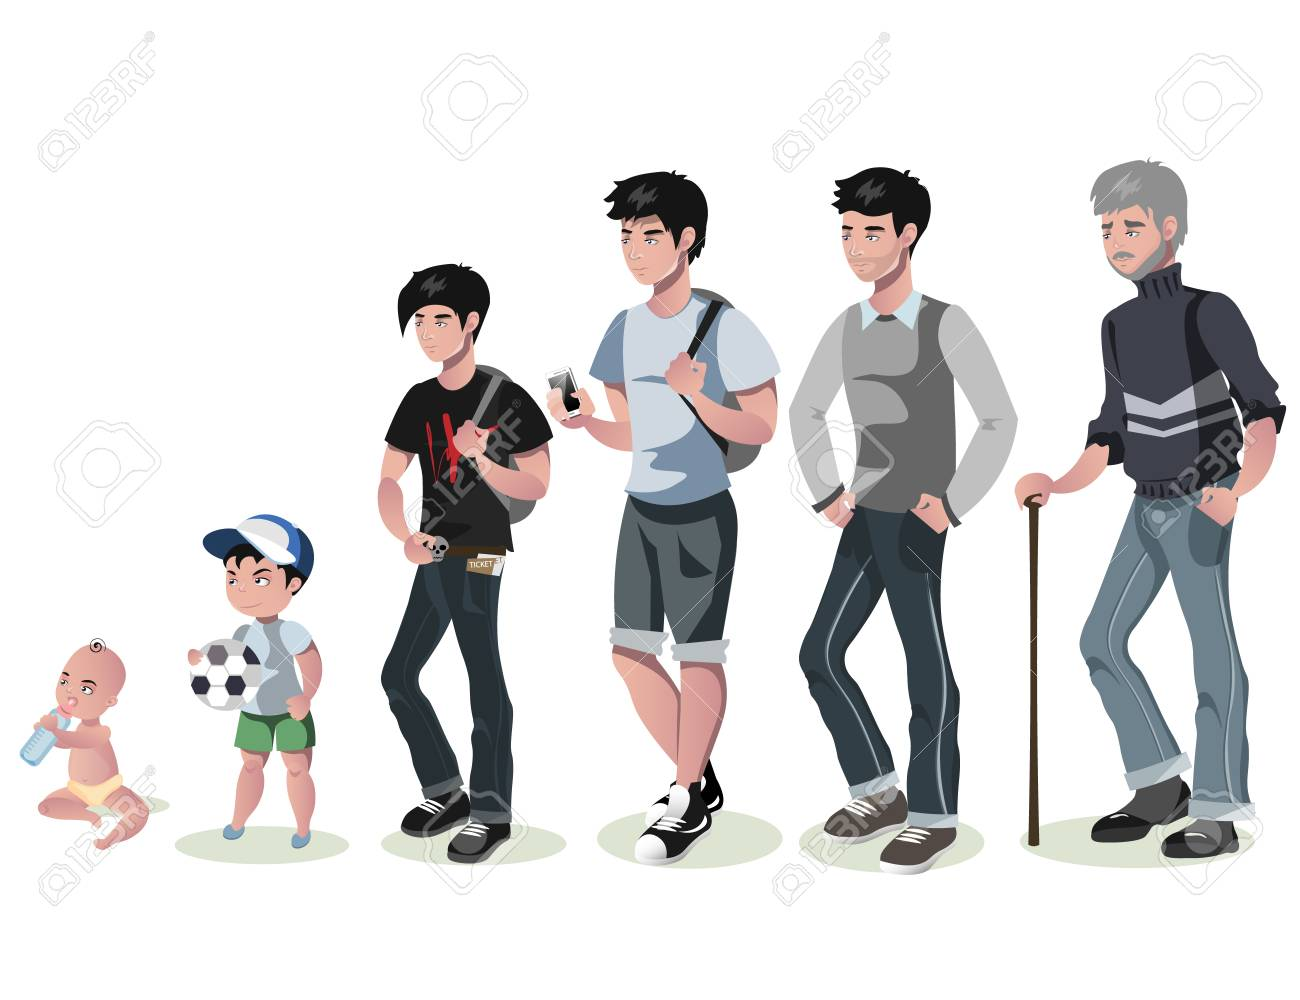 Cycle of life for men. From baby to senior. - 85641651